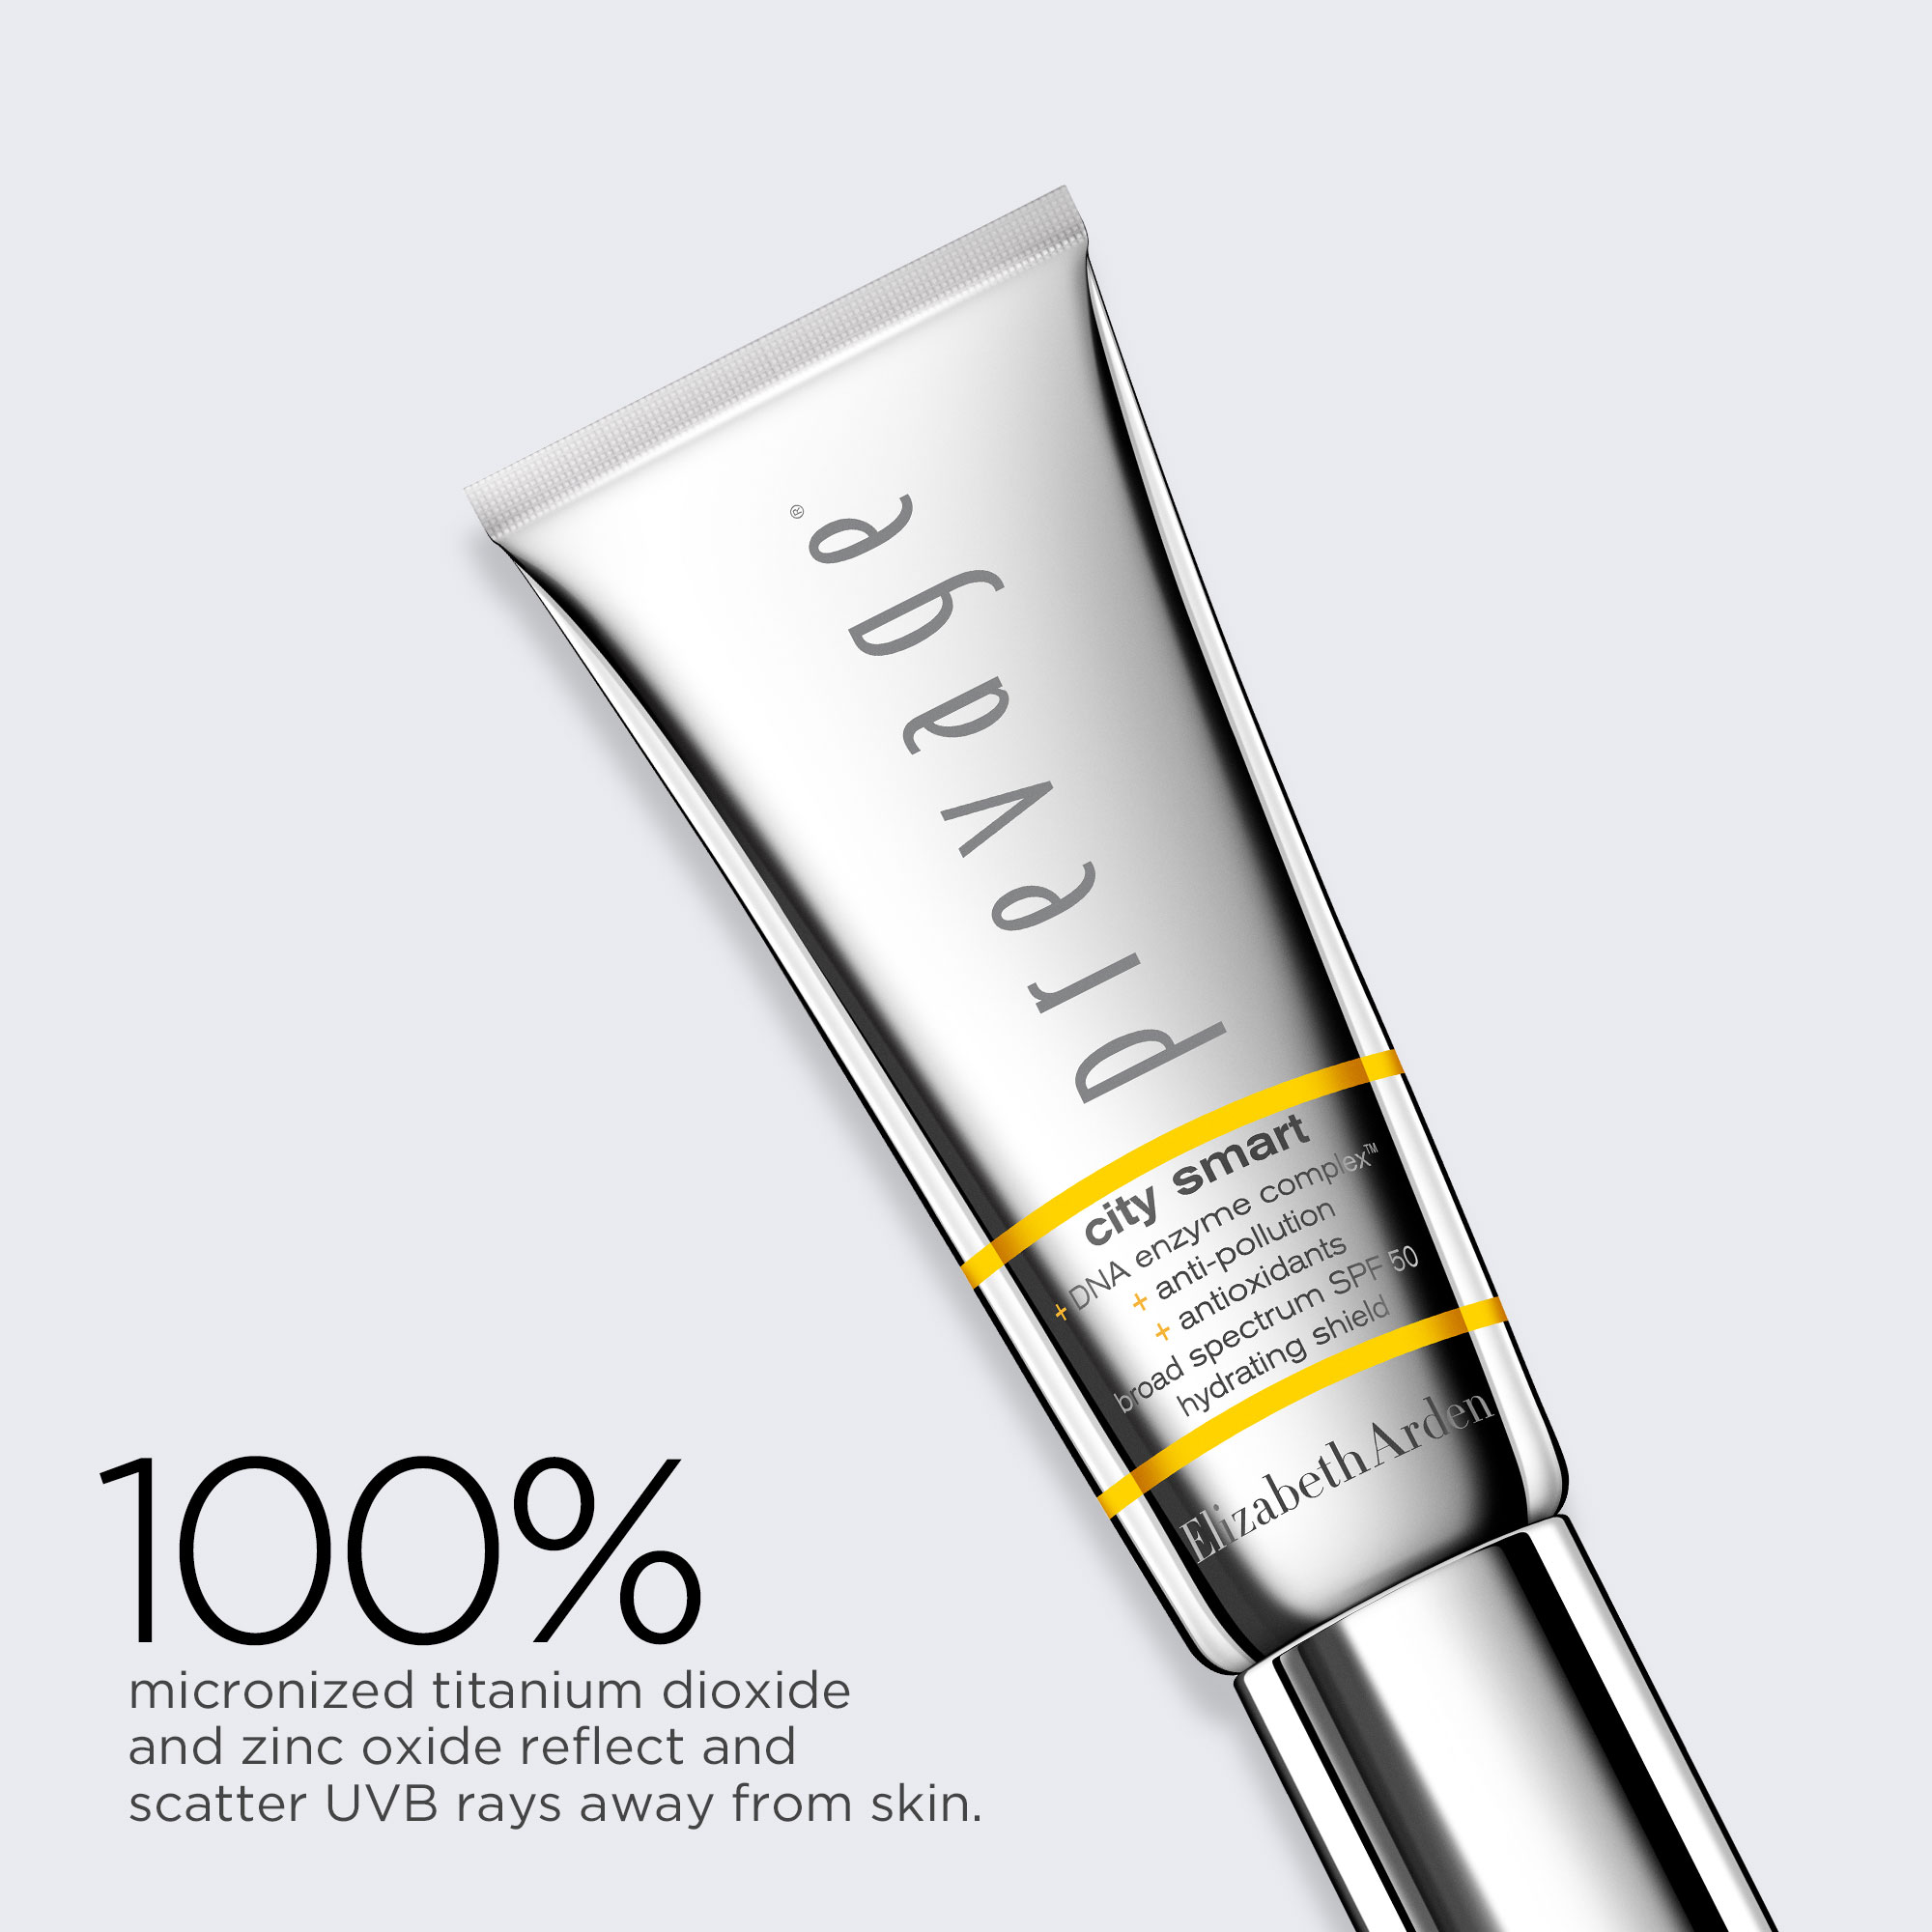 100% micronized titanium dioxide and zinc oxide reflect and scatter UVB rays away from skin